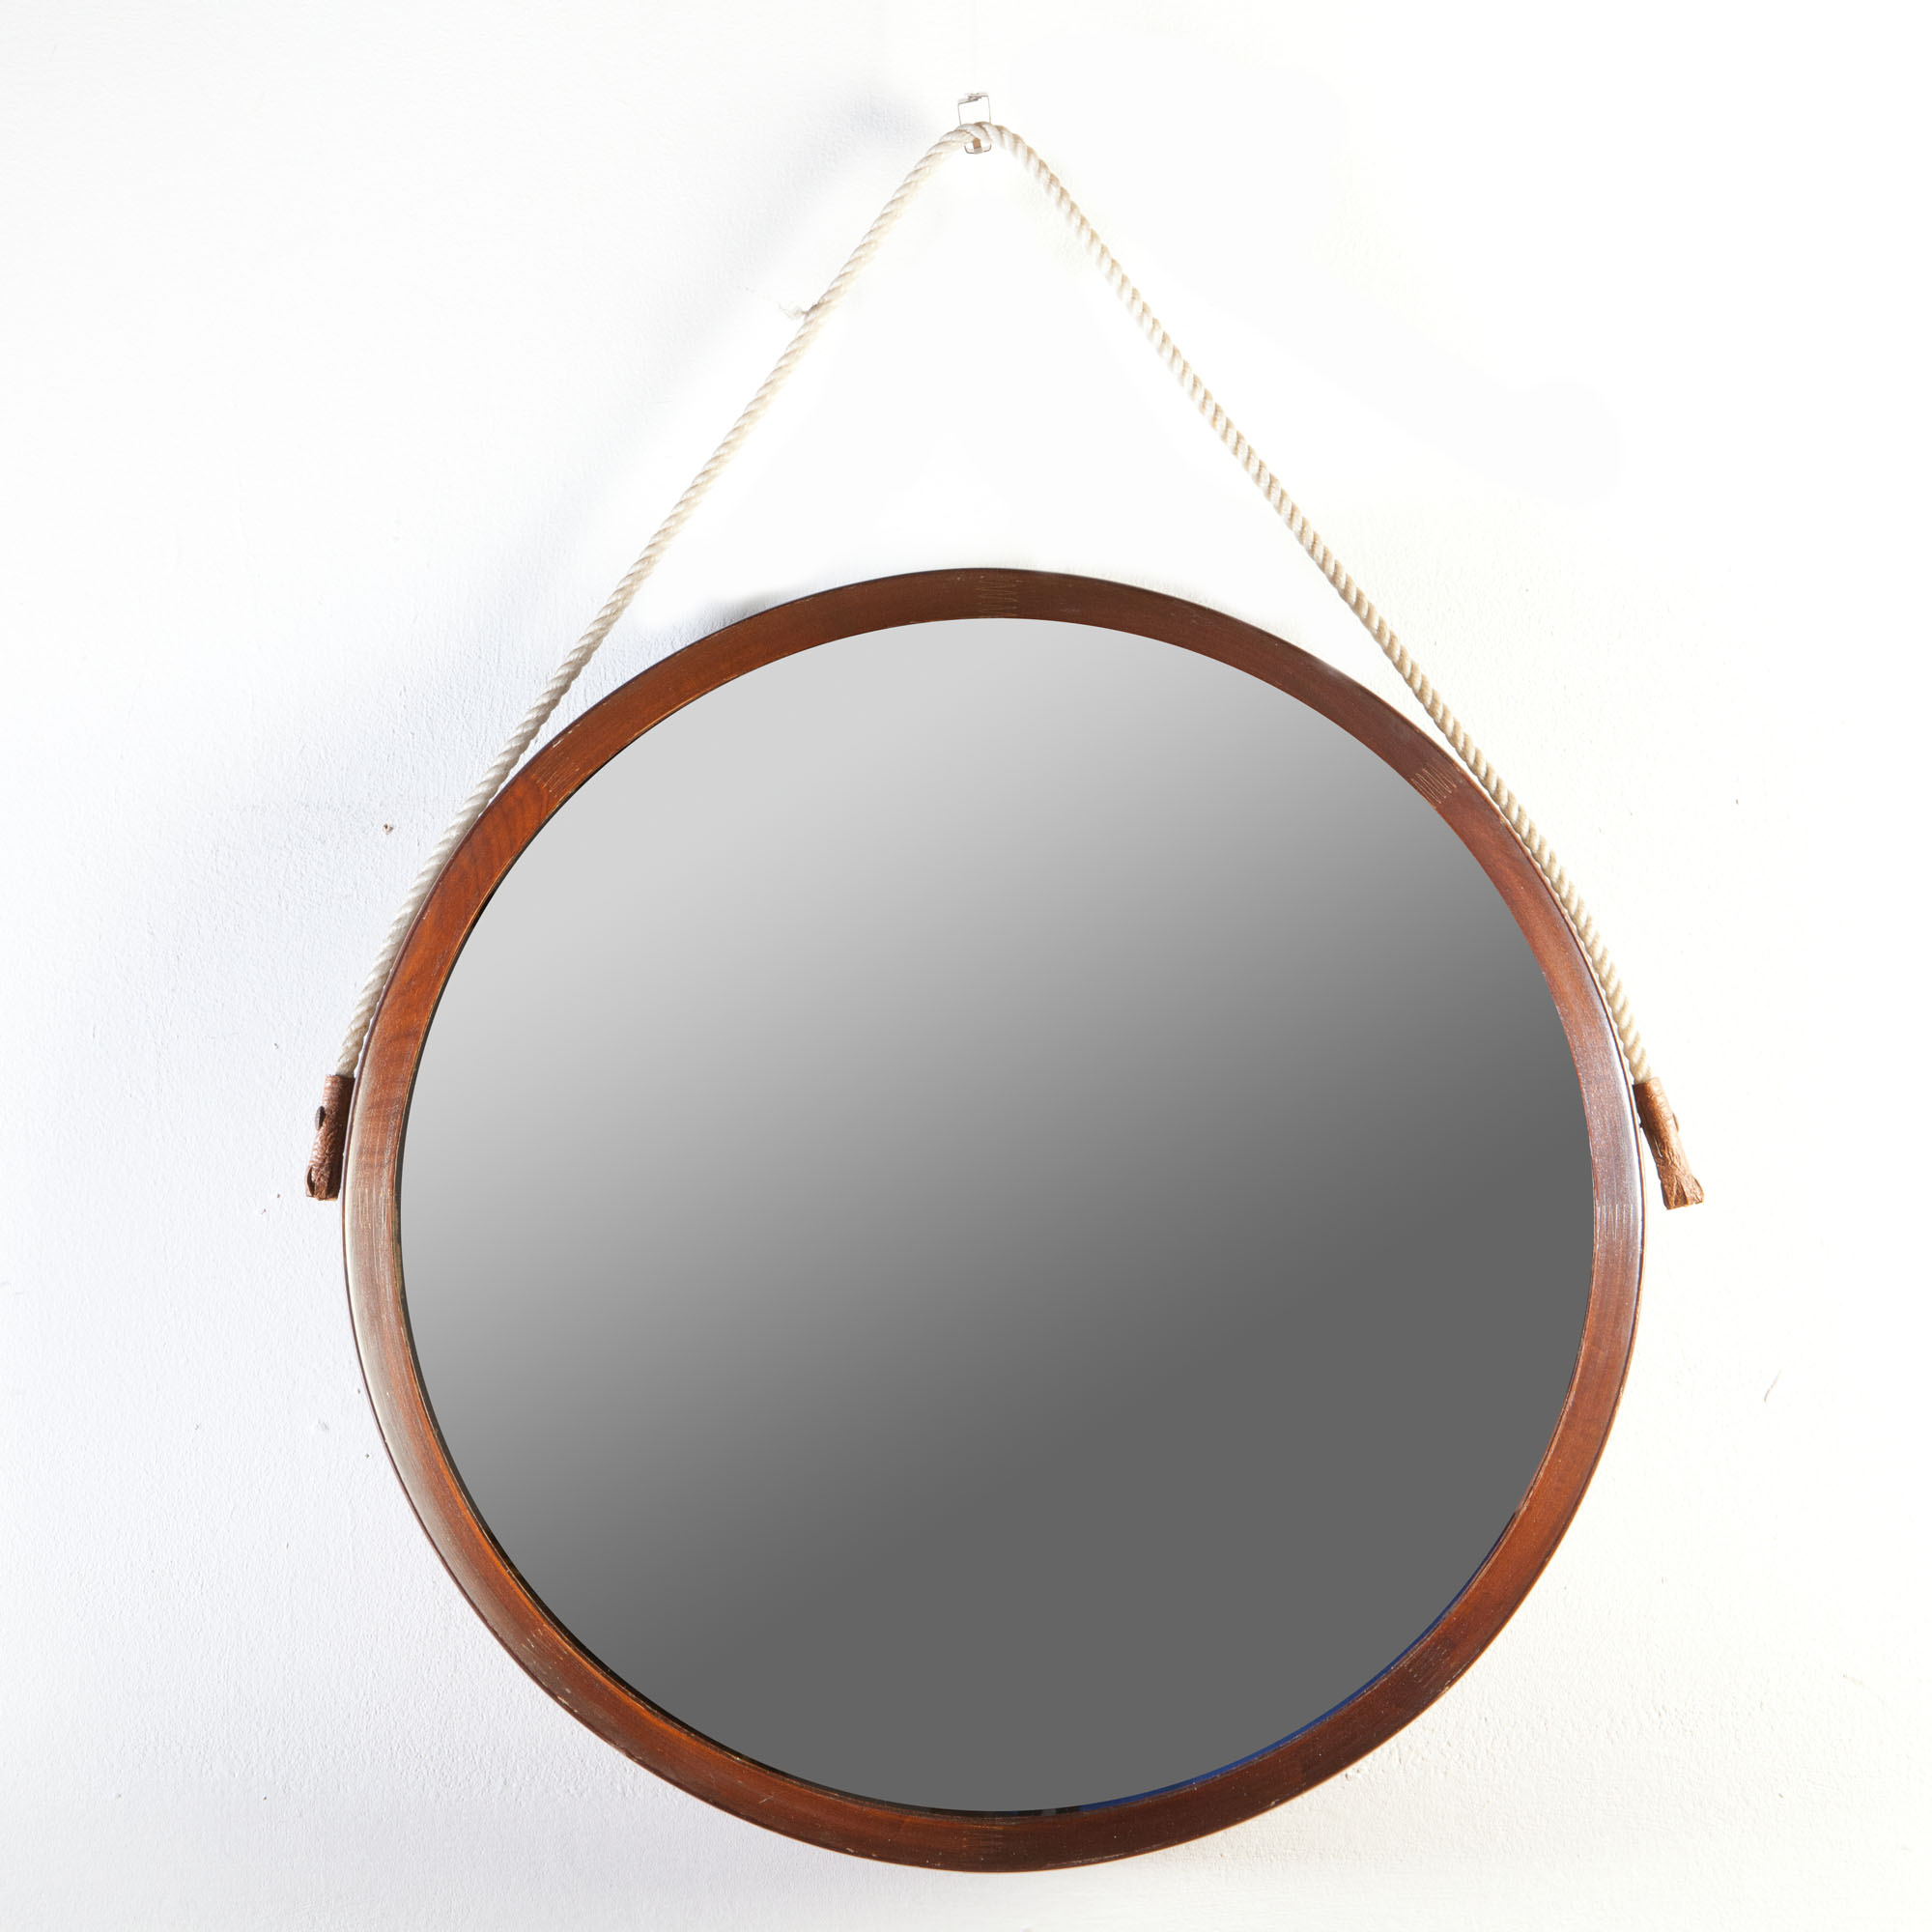 An Italian 1970s circular mirror with a rope